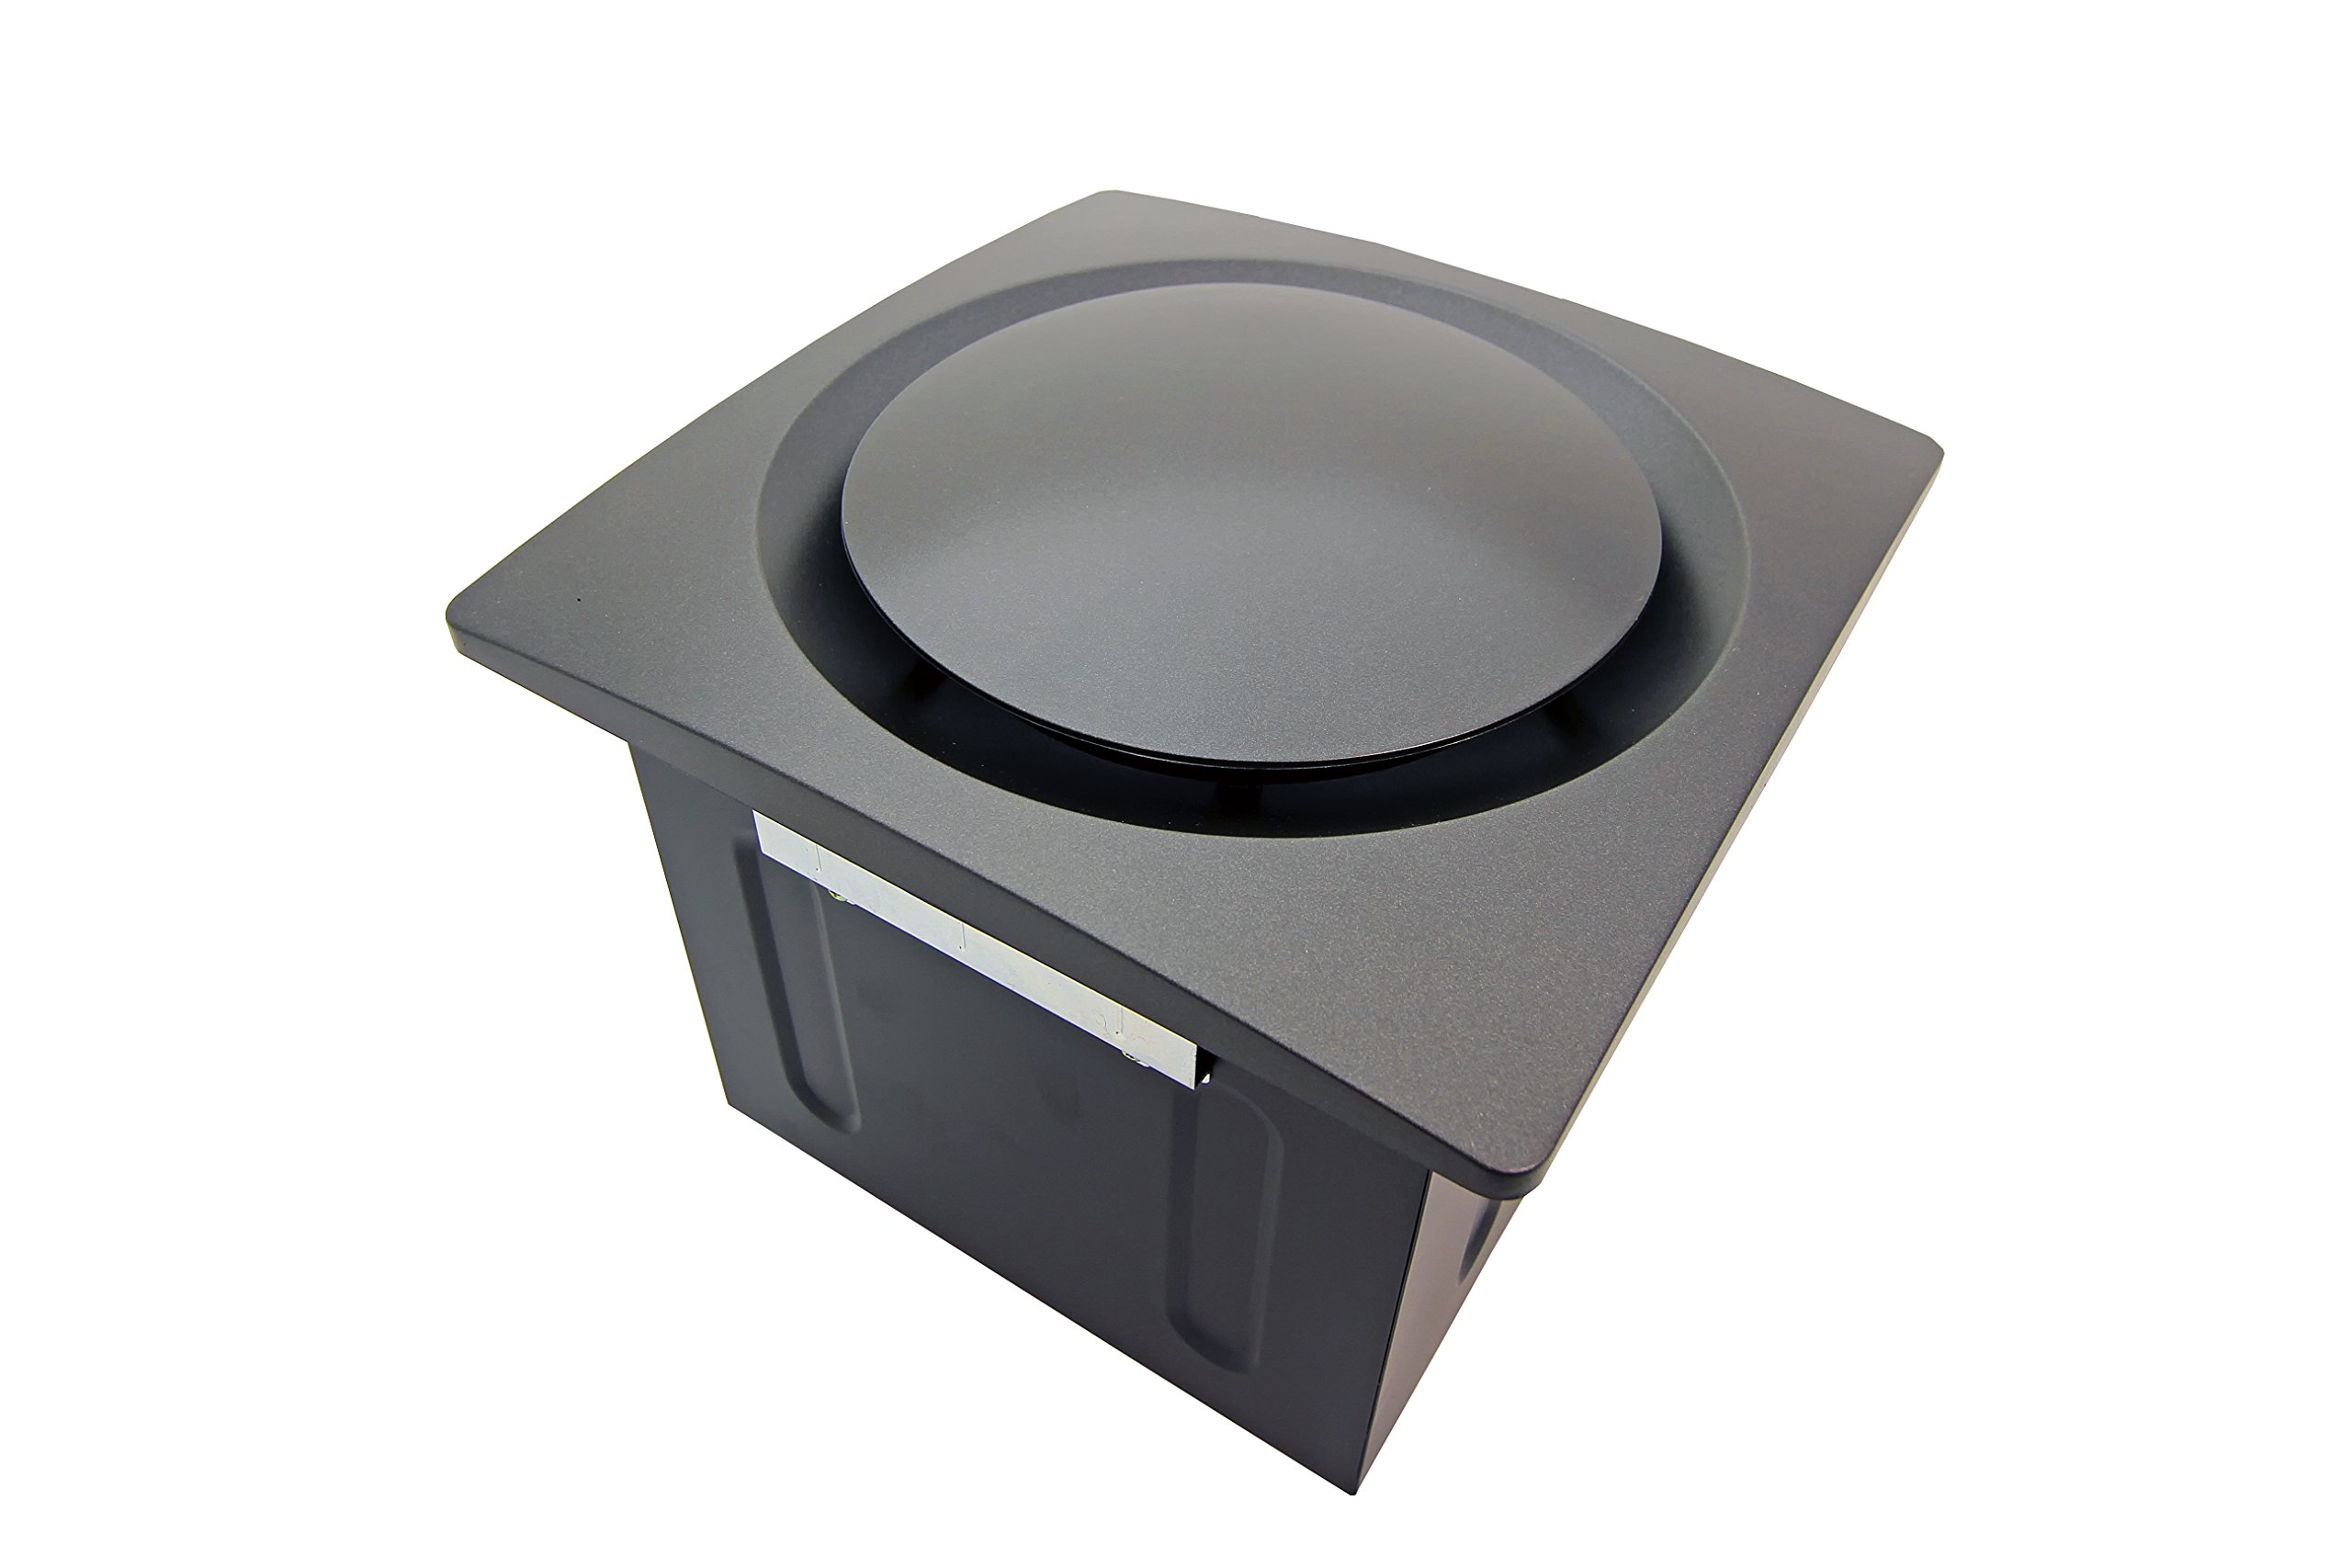 Aero Pure SBF 110 G6 OR 110-CFM Super Quiet Bathroom Ventilation Fan, Energy Star Qualified, Oil Rubbed Bronze